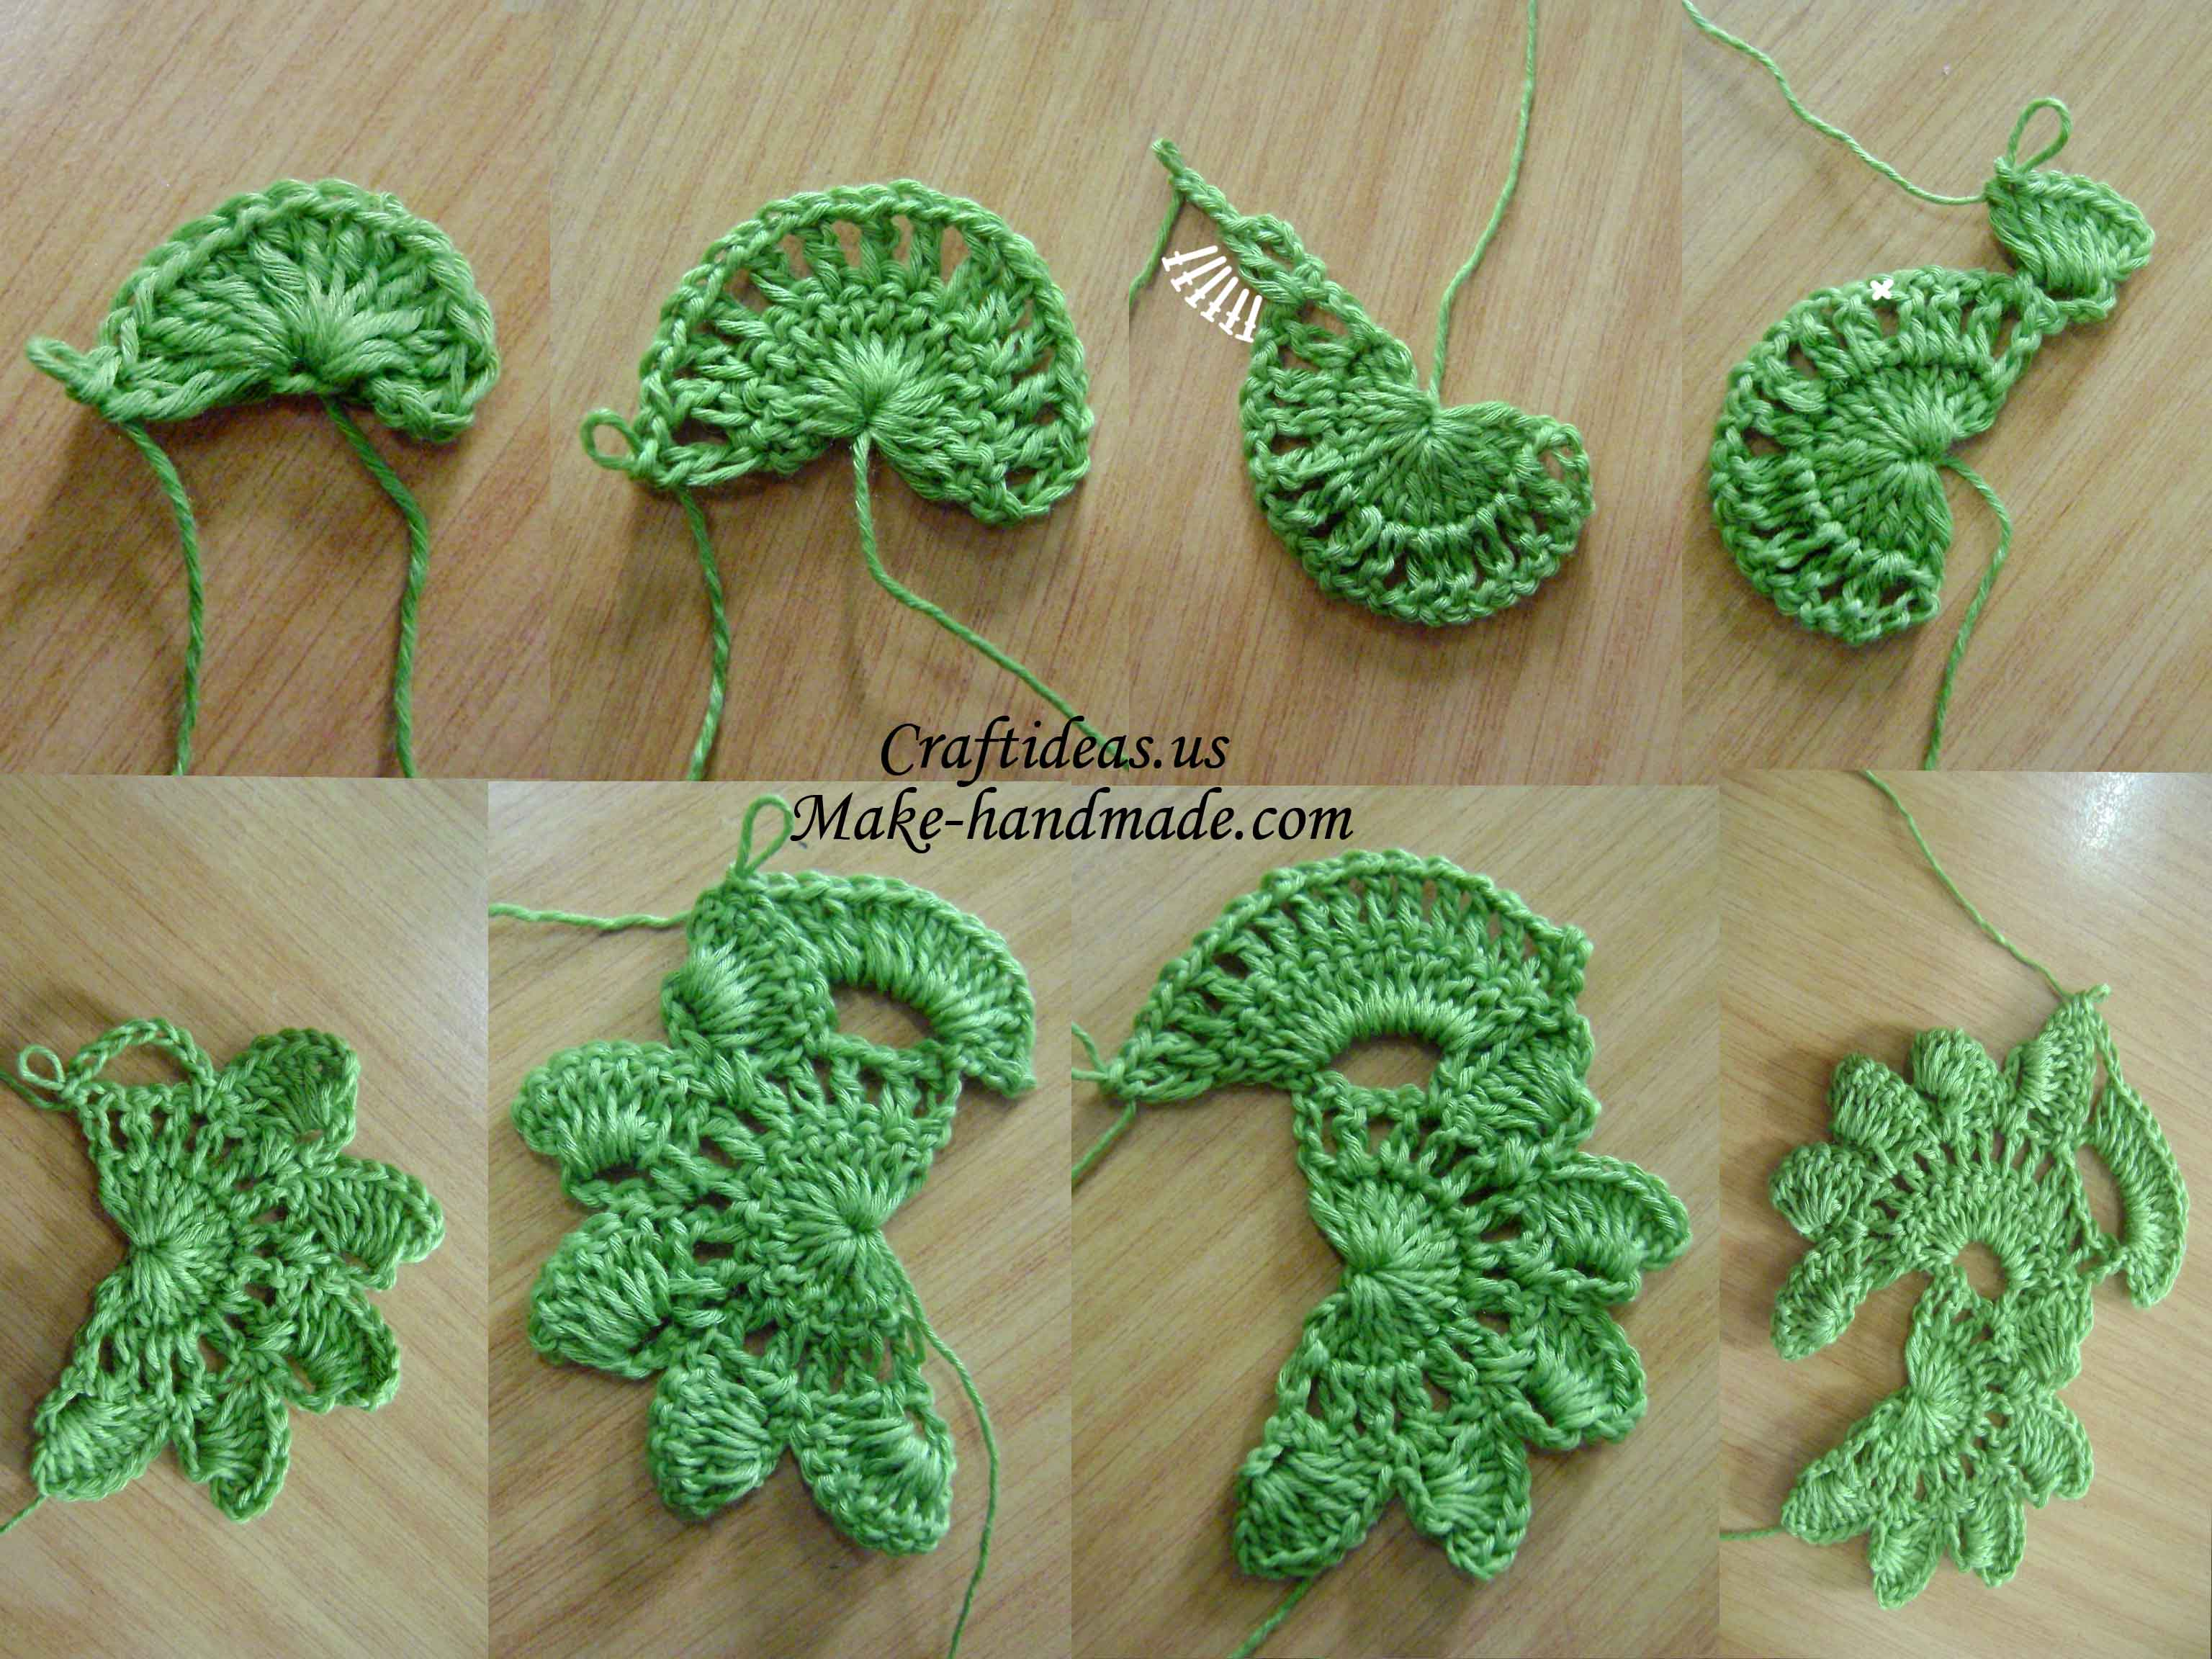 Crochet Tutorial : ... crochet flowers tutorial leave a reply crochet tulip flower tutorial